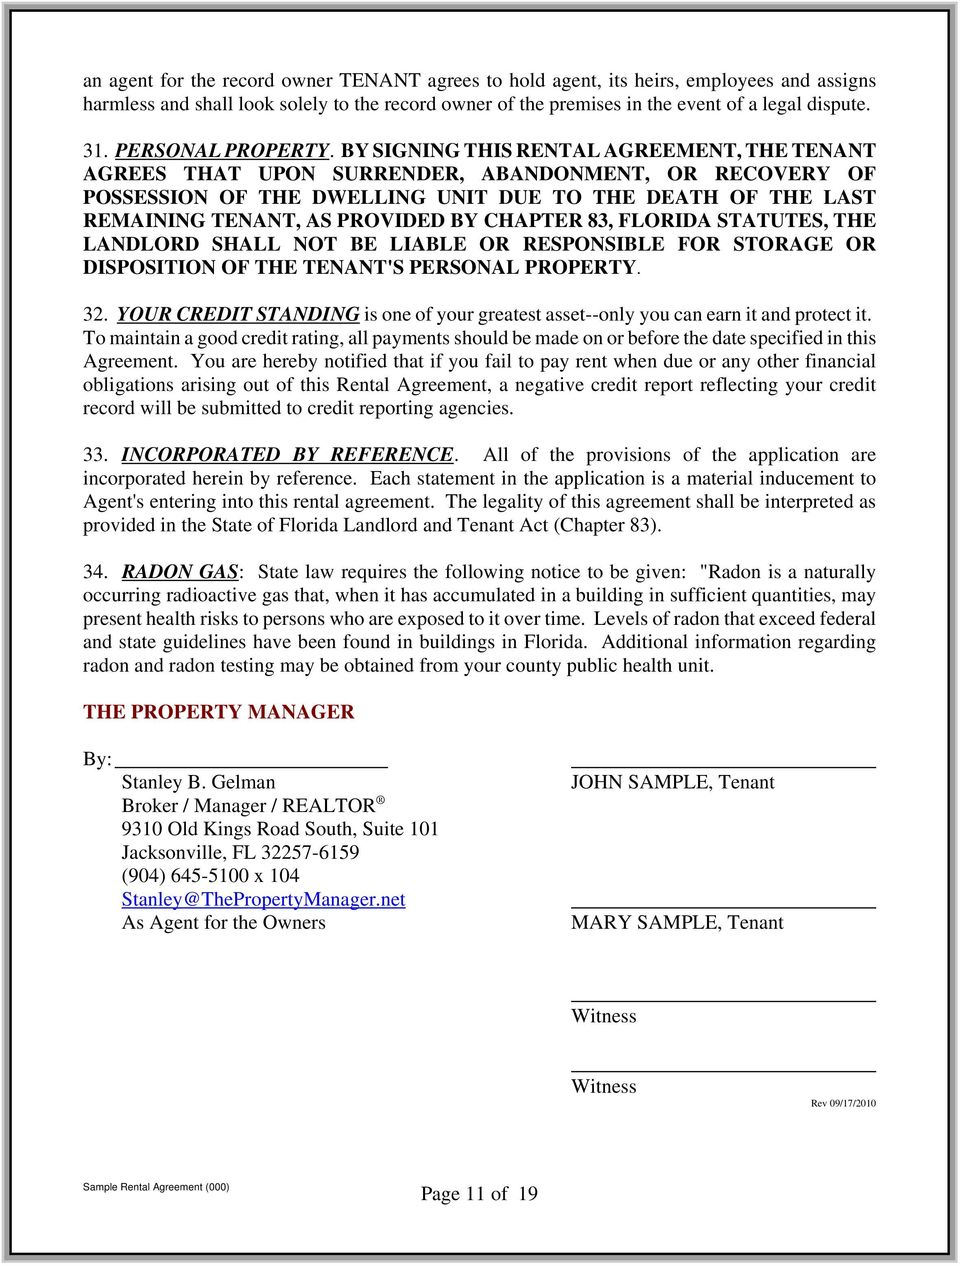 BY SIGNING THIS RENTAL AGREEMENT, THE TENANT AGREES THAT UPON SURRENDER, ABANDONMENT, OR RECOVERY OF POSSESSION OF THE DWELLING UNIT DUE TO THE DEATH OF THE LAST REMAINING TENANT, AS PROVIDED BY